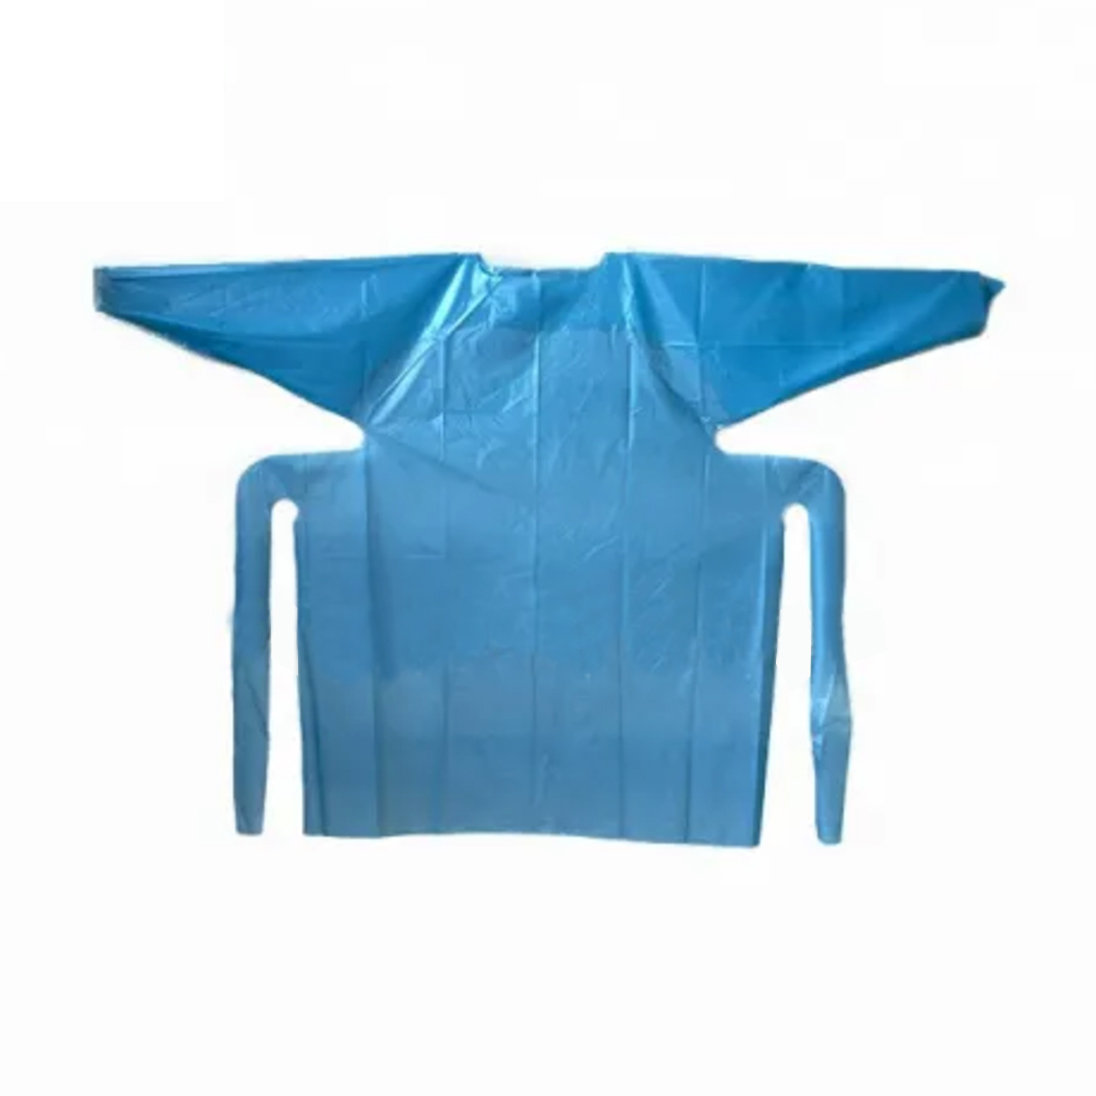 BodyMed® Non-Surgical Isolation Gown